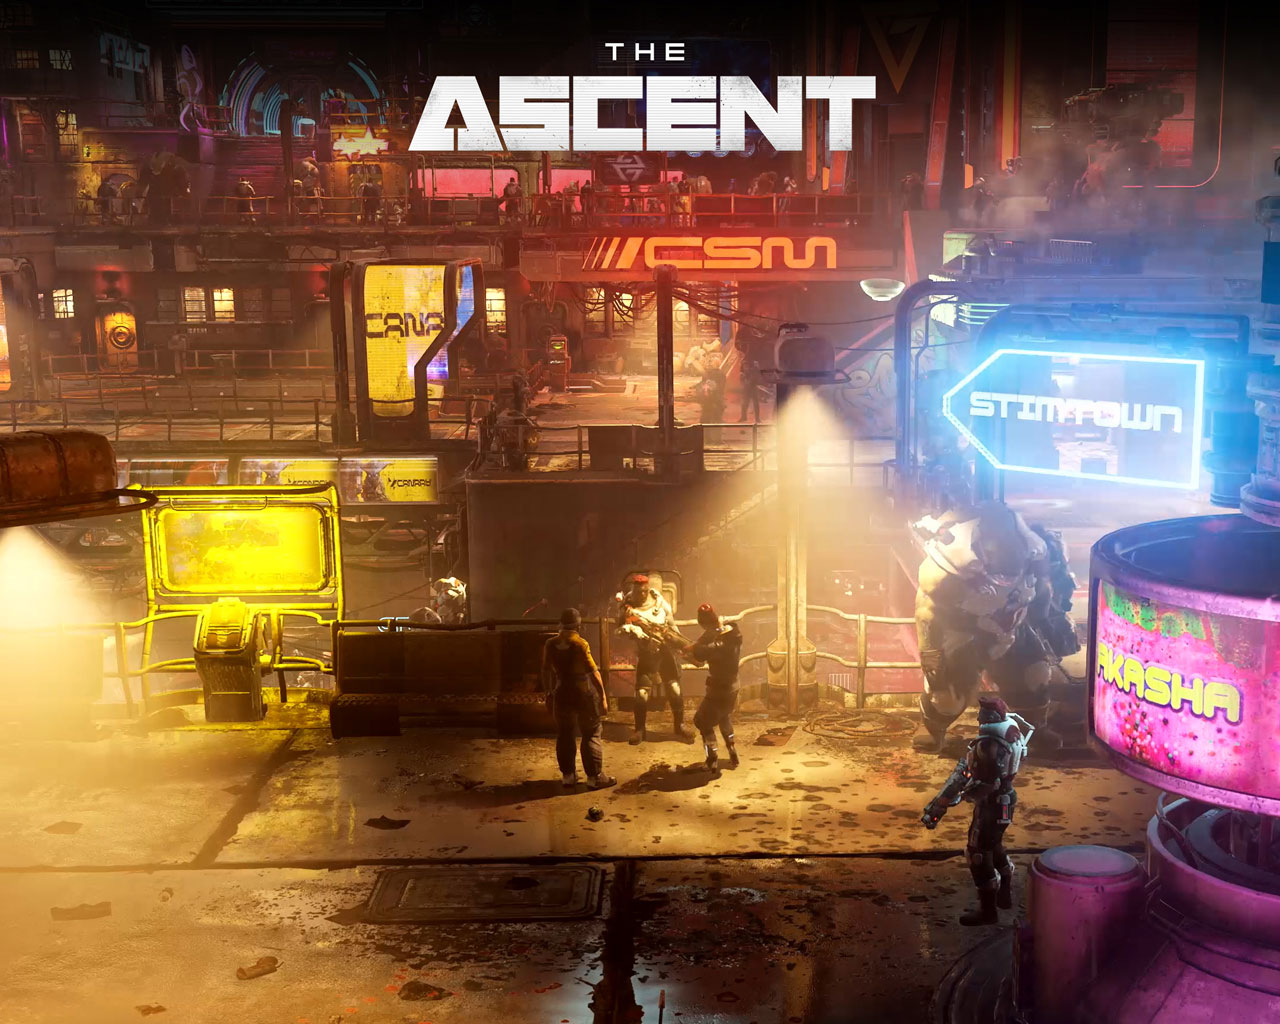 the-ascent-release-poster-01.jpg